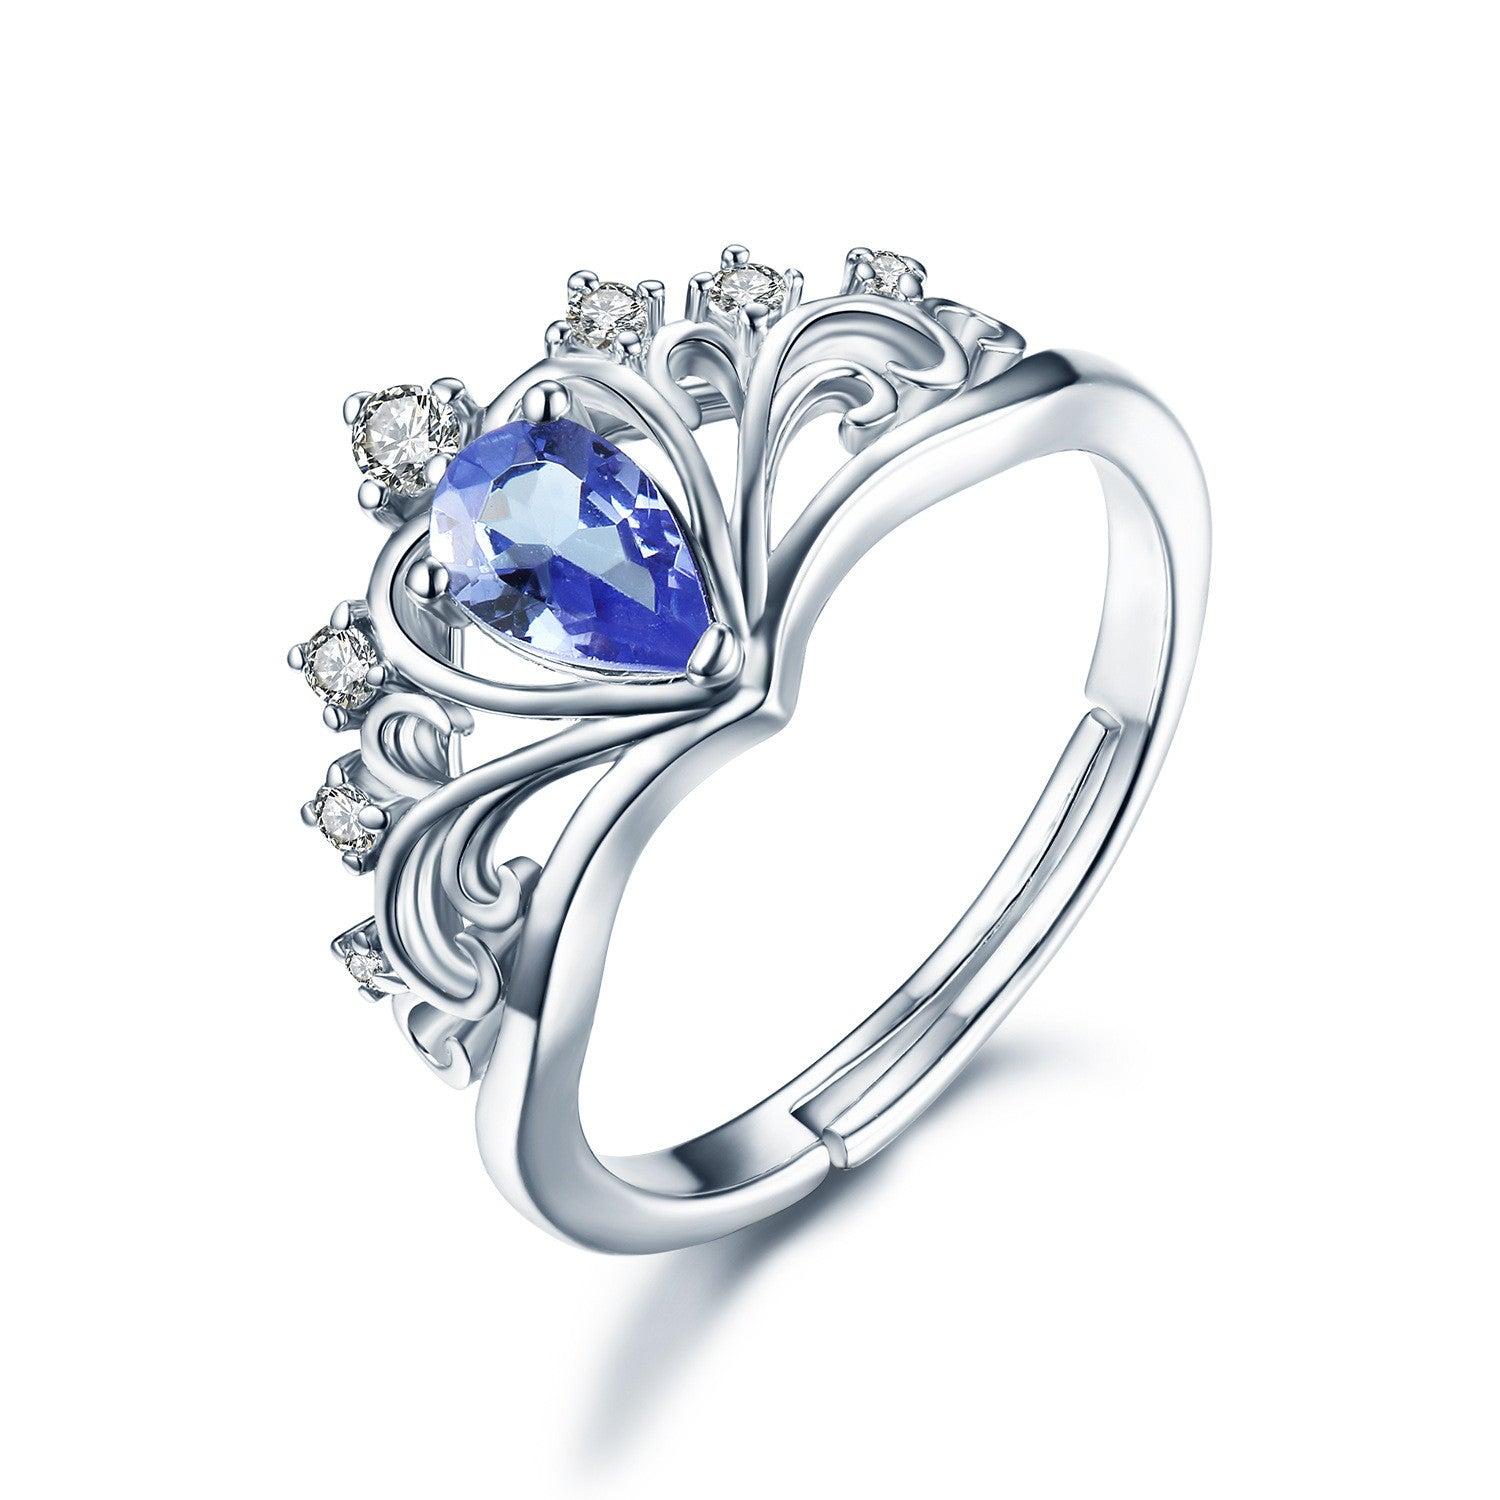 barmakian chalcedony rings tacori gem featuring products ring crescent